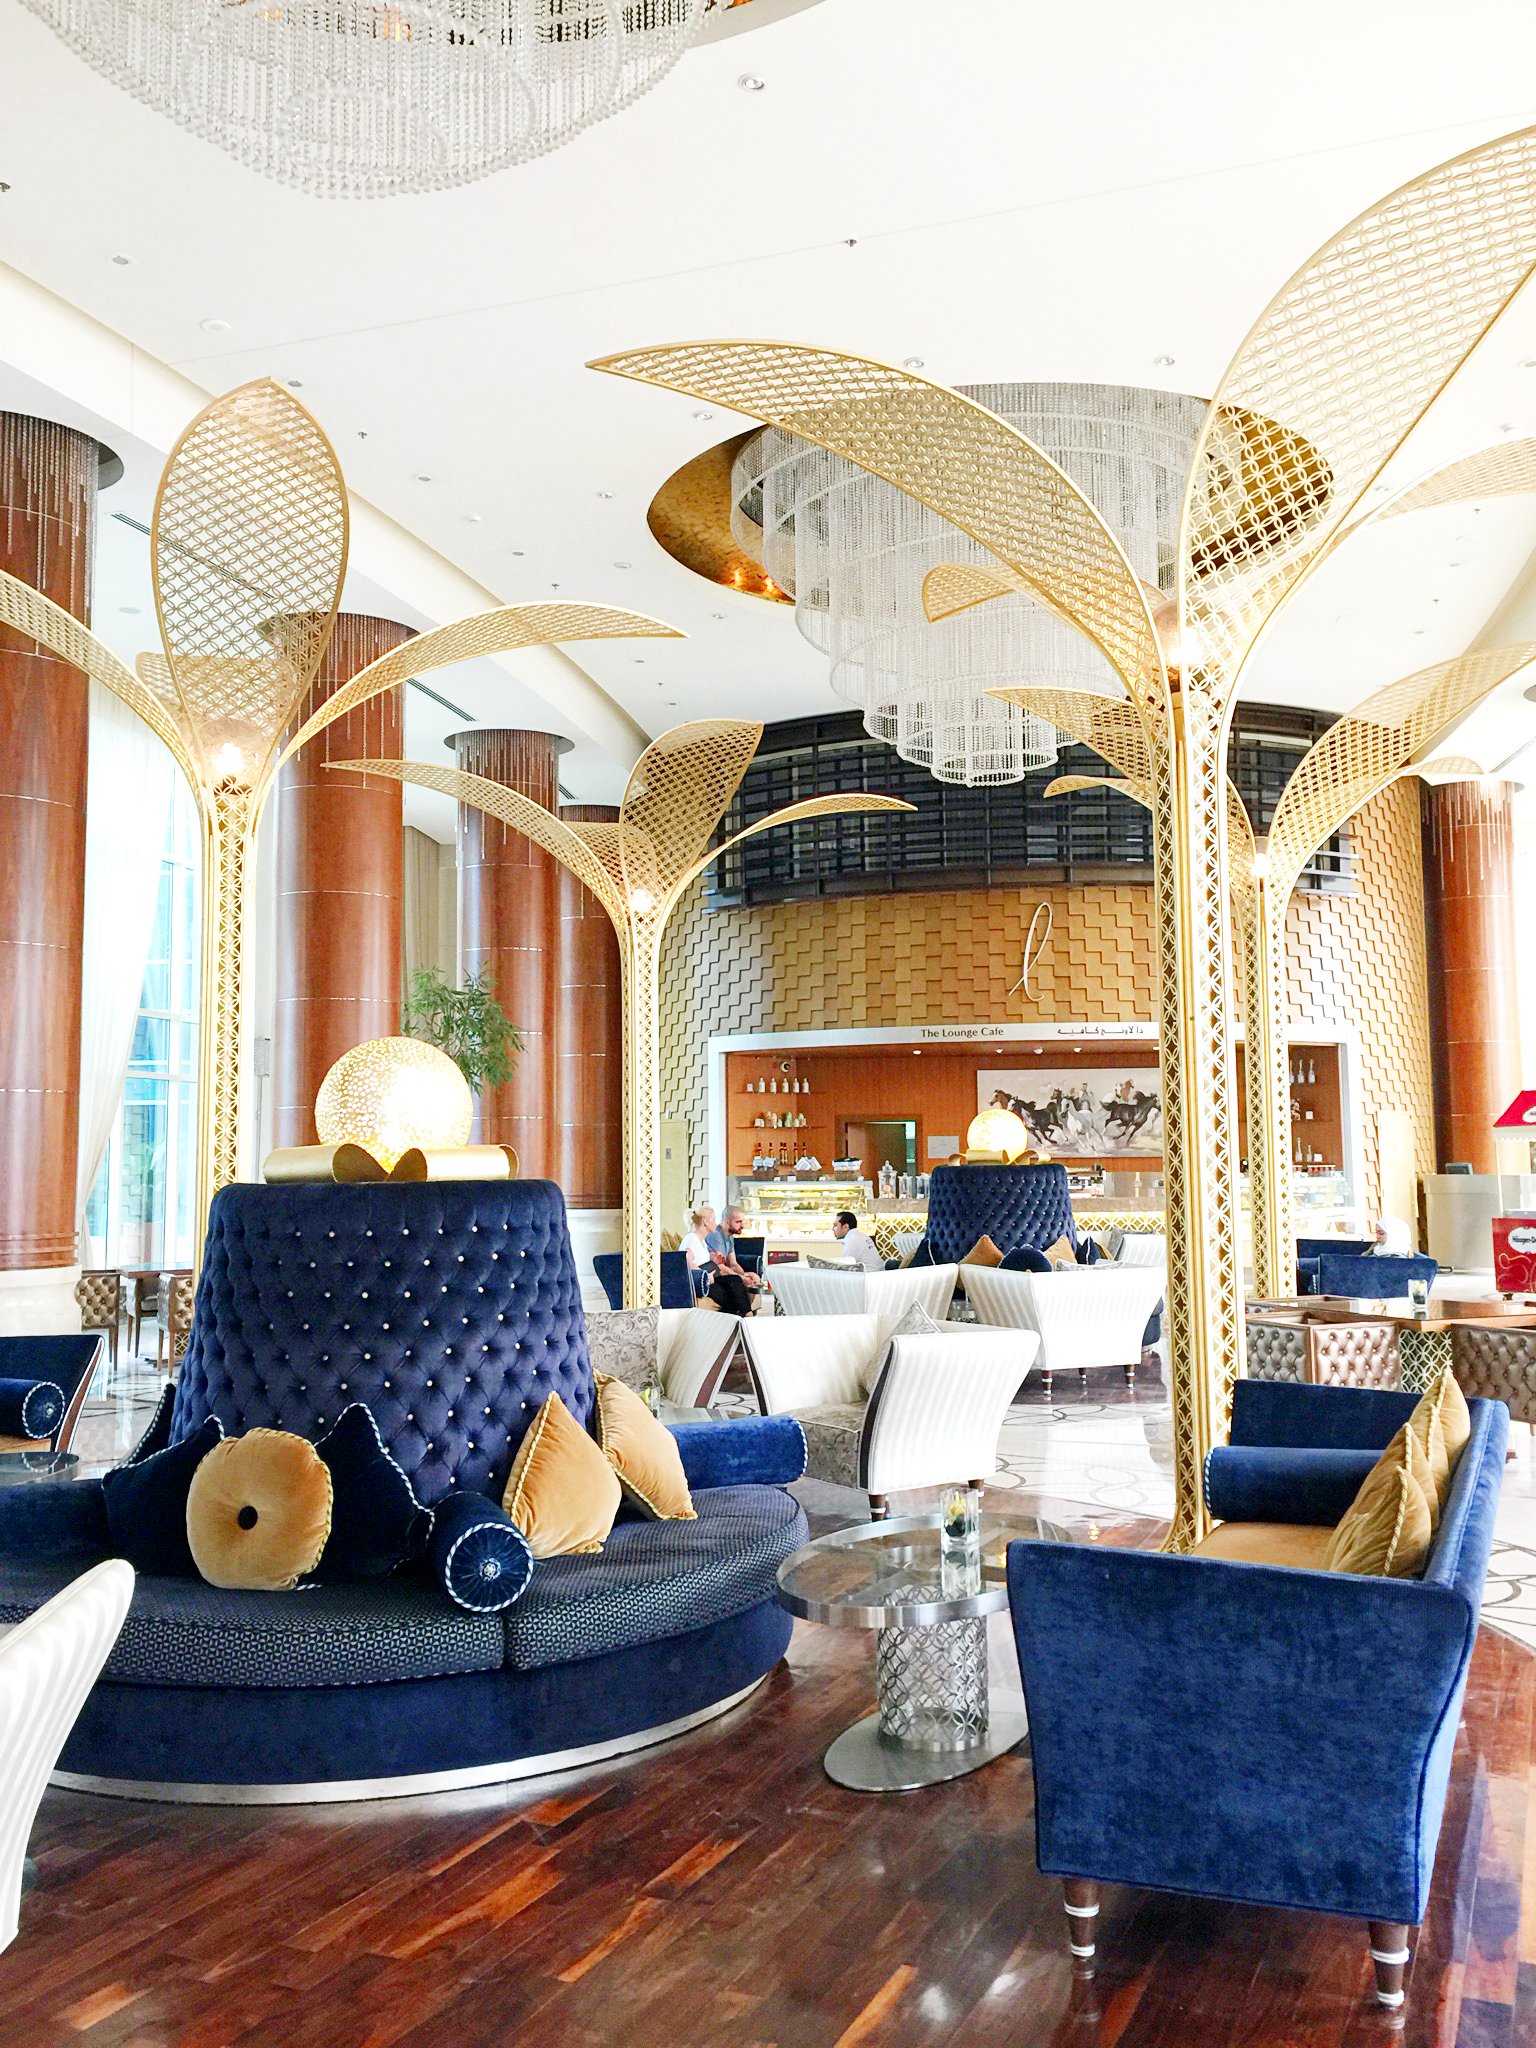 Kurztrip nach Abu Dhabi - unser Hotel // Travel to Abu Dhabi - the hotel by https://babyrockmyday.com/abu-dhabi-unser-hotel/